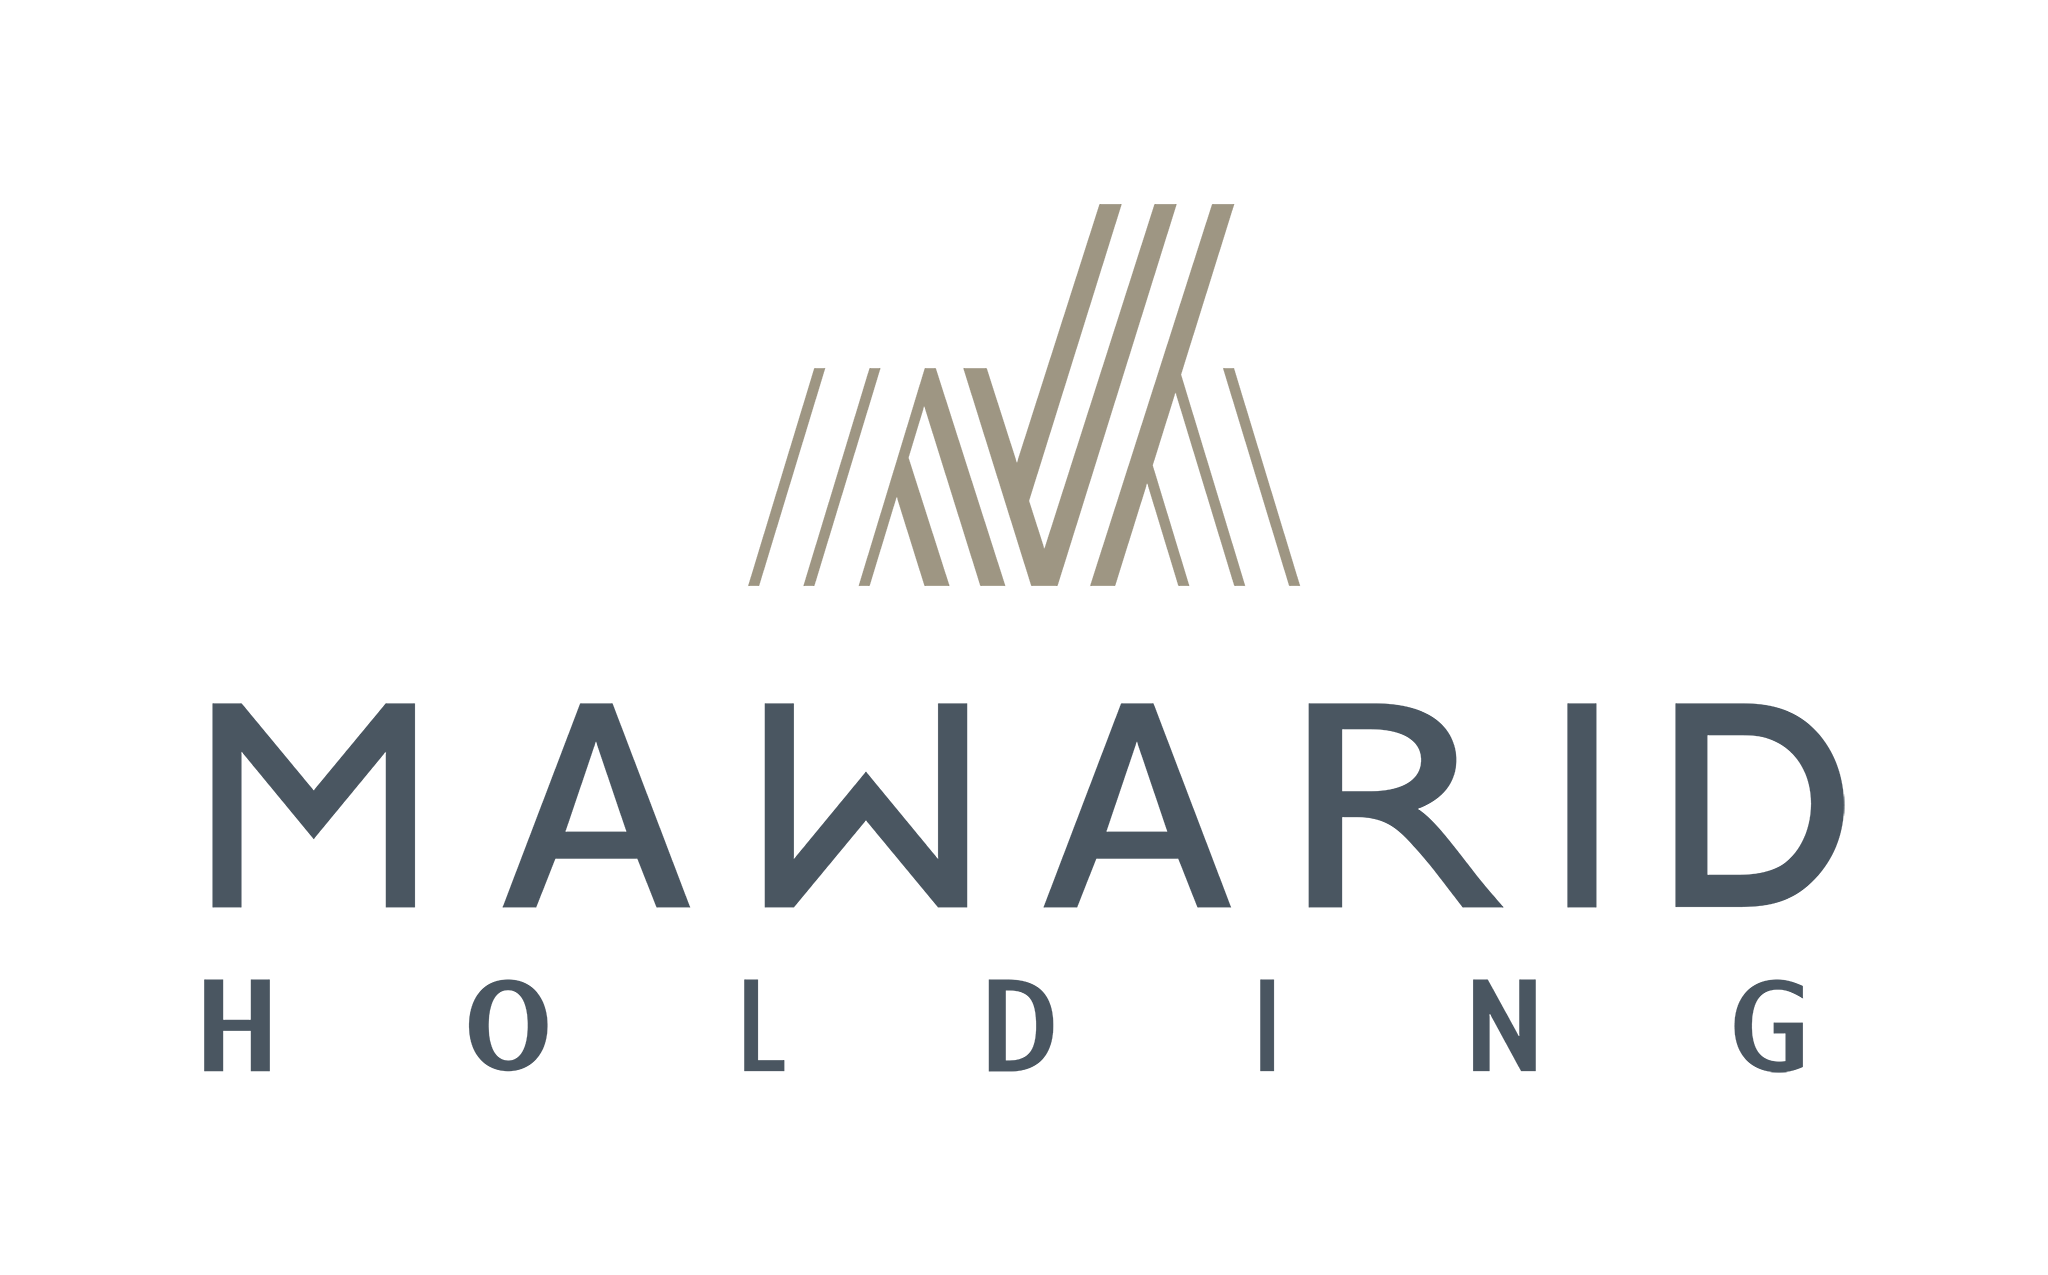 Mawaridh Holding Co.